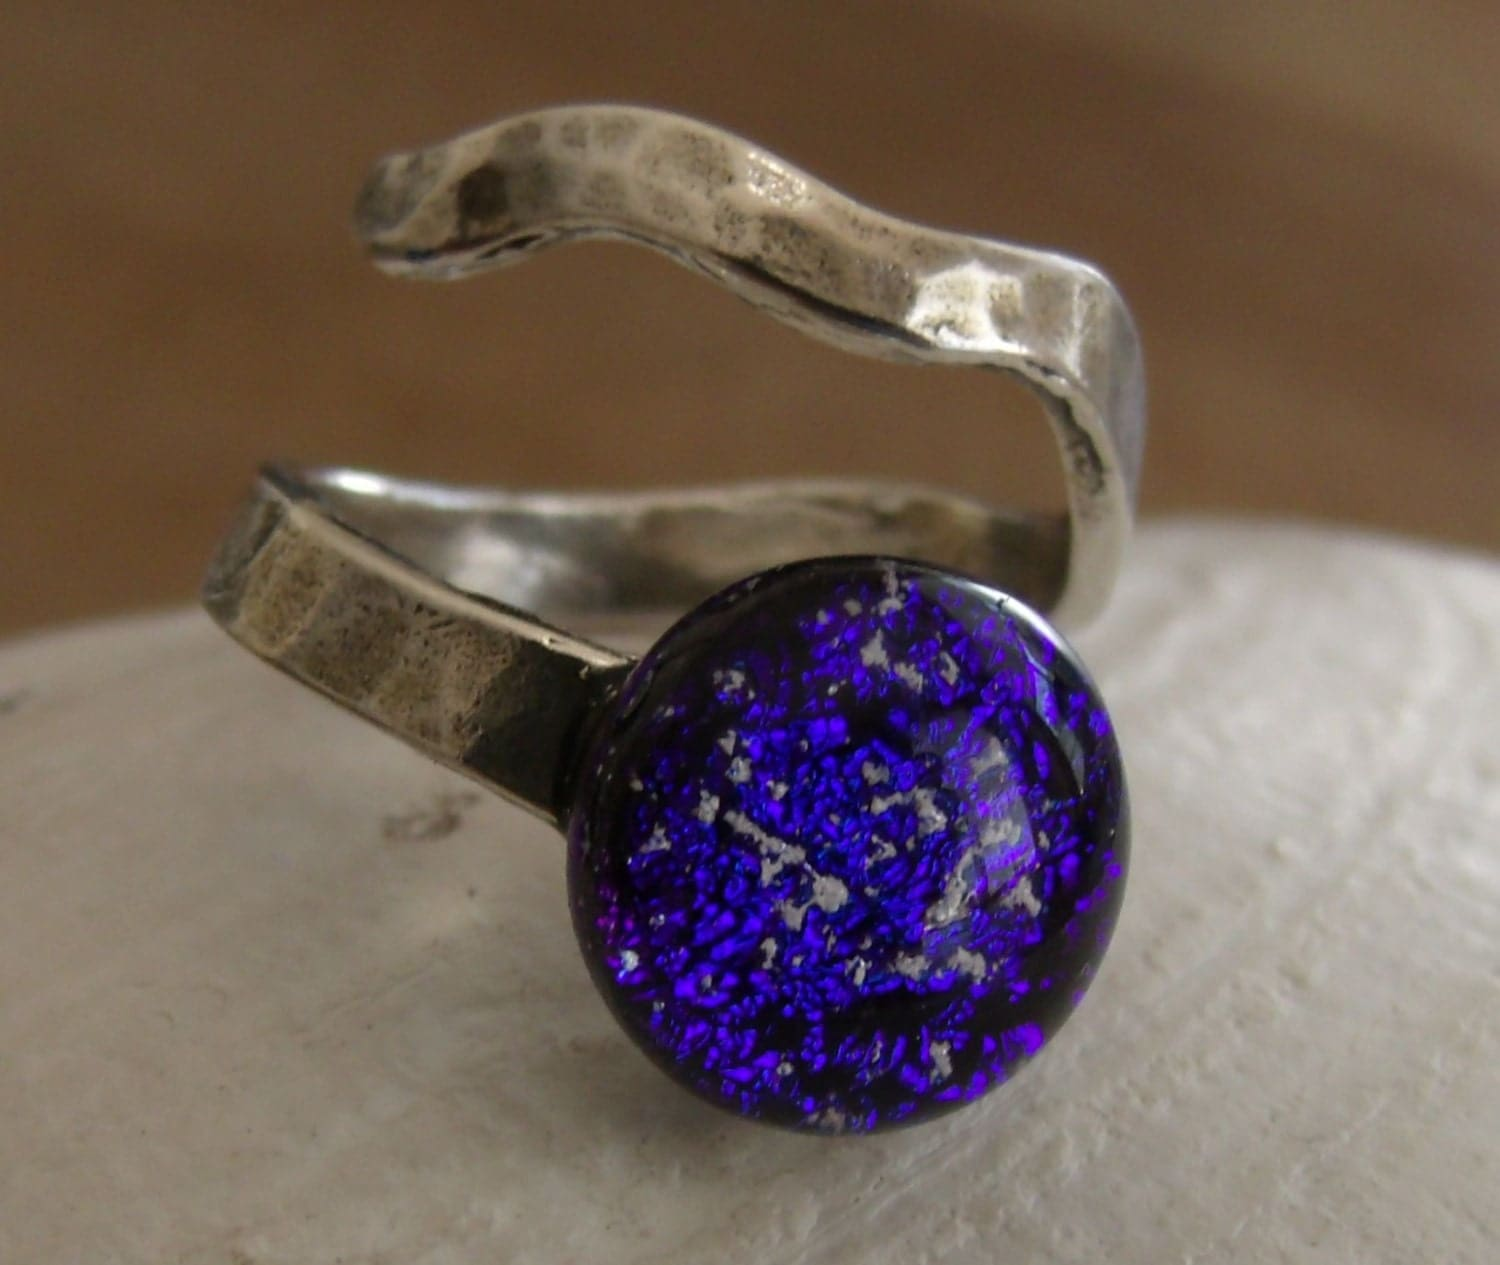 cremation jewelry ring sterling silver adjustable band